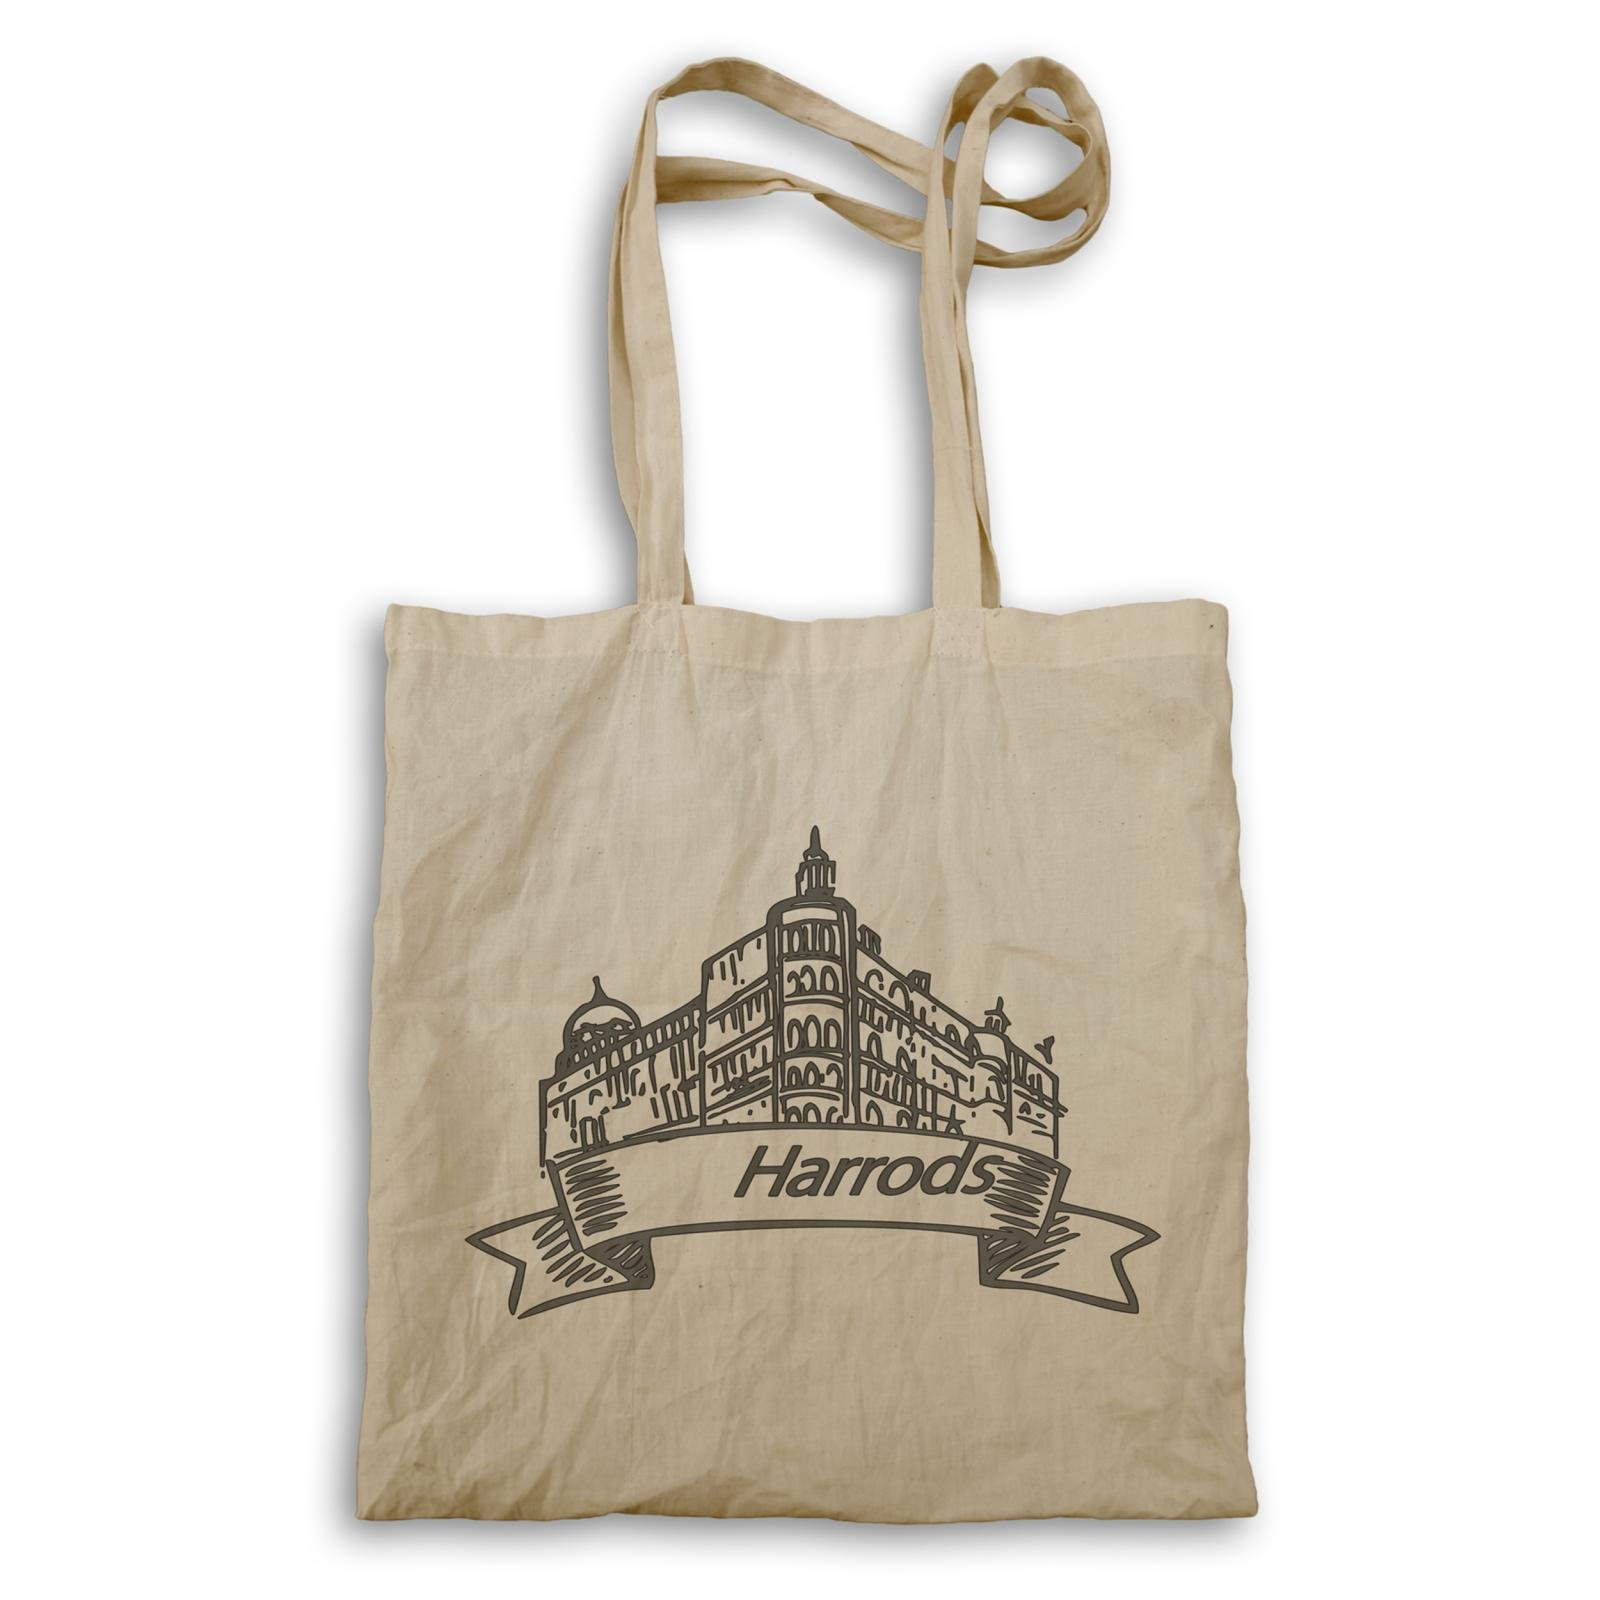 New I Love London Harrods Tote bag m480r